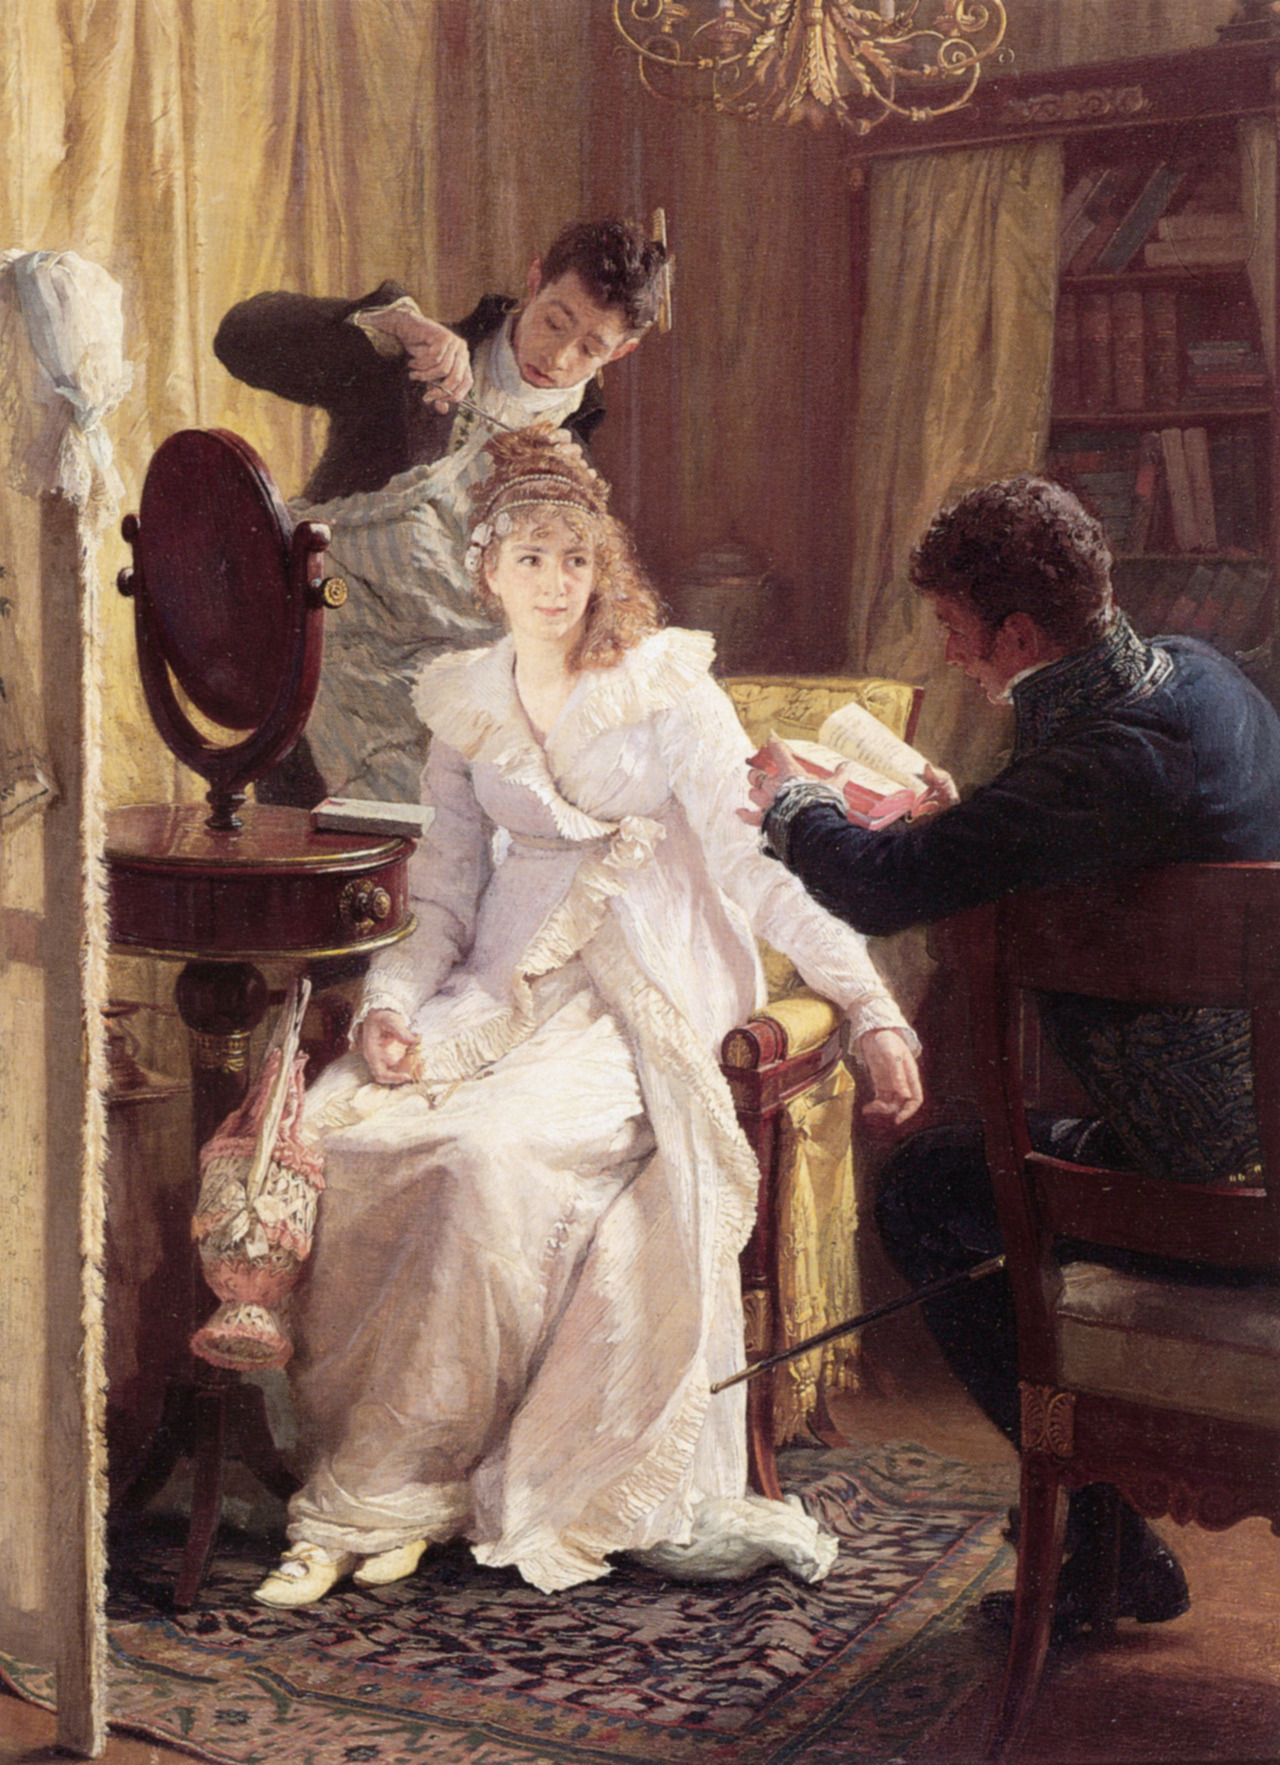 "Preparing For the Ball. Franz Xaver Simm (Austrian, 1853-1918). Oil on panel. ""…The young girls look best in light gossamer material, in tulle, crepe, or tarlatan, in pale light colors or in white, while an elderly, stout woman never looks so badly as in low-necked light-colored silks or satins, Young women look well in natural flowers; elderly women, in feathers and jewelled head-dresses."" (Excerpt from ""Manners and Social Usages,"" by Mrs. John M. E. W. Sherwood, 1887)"